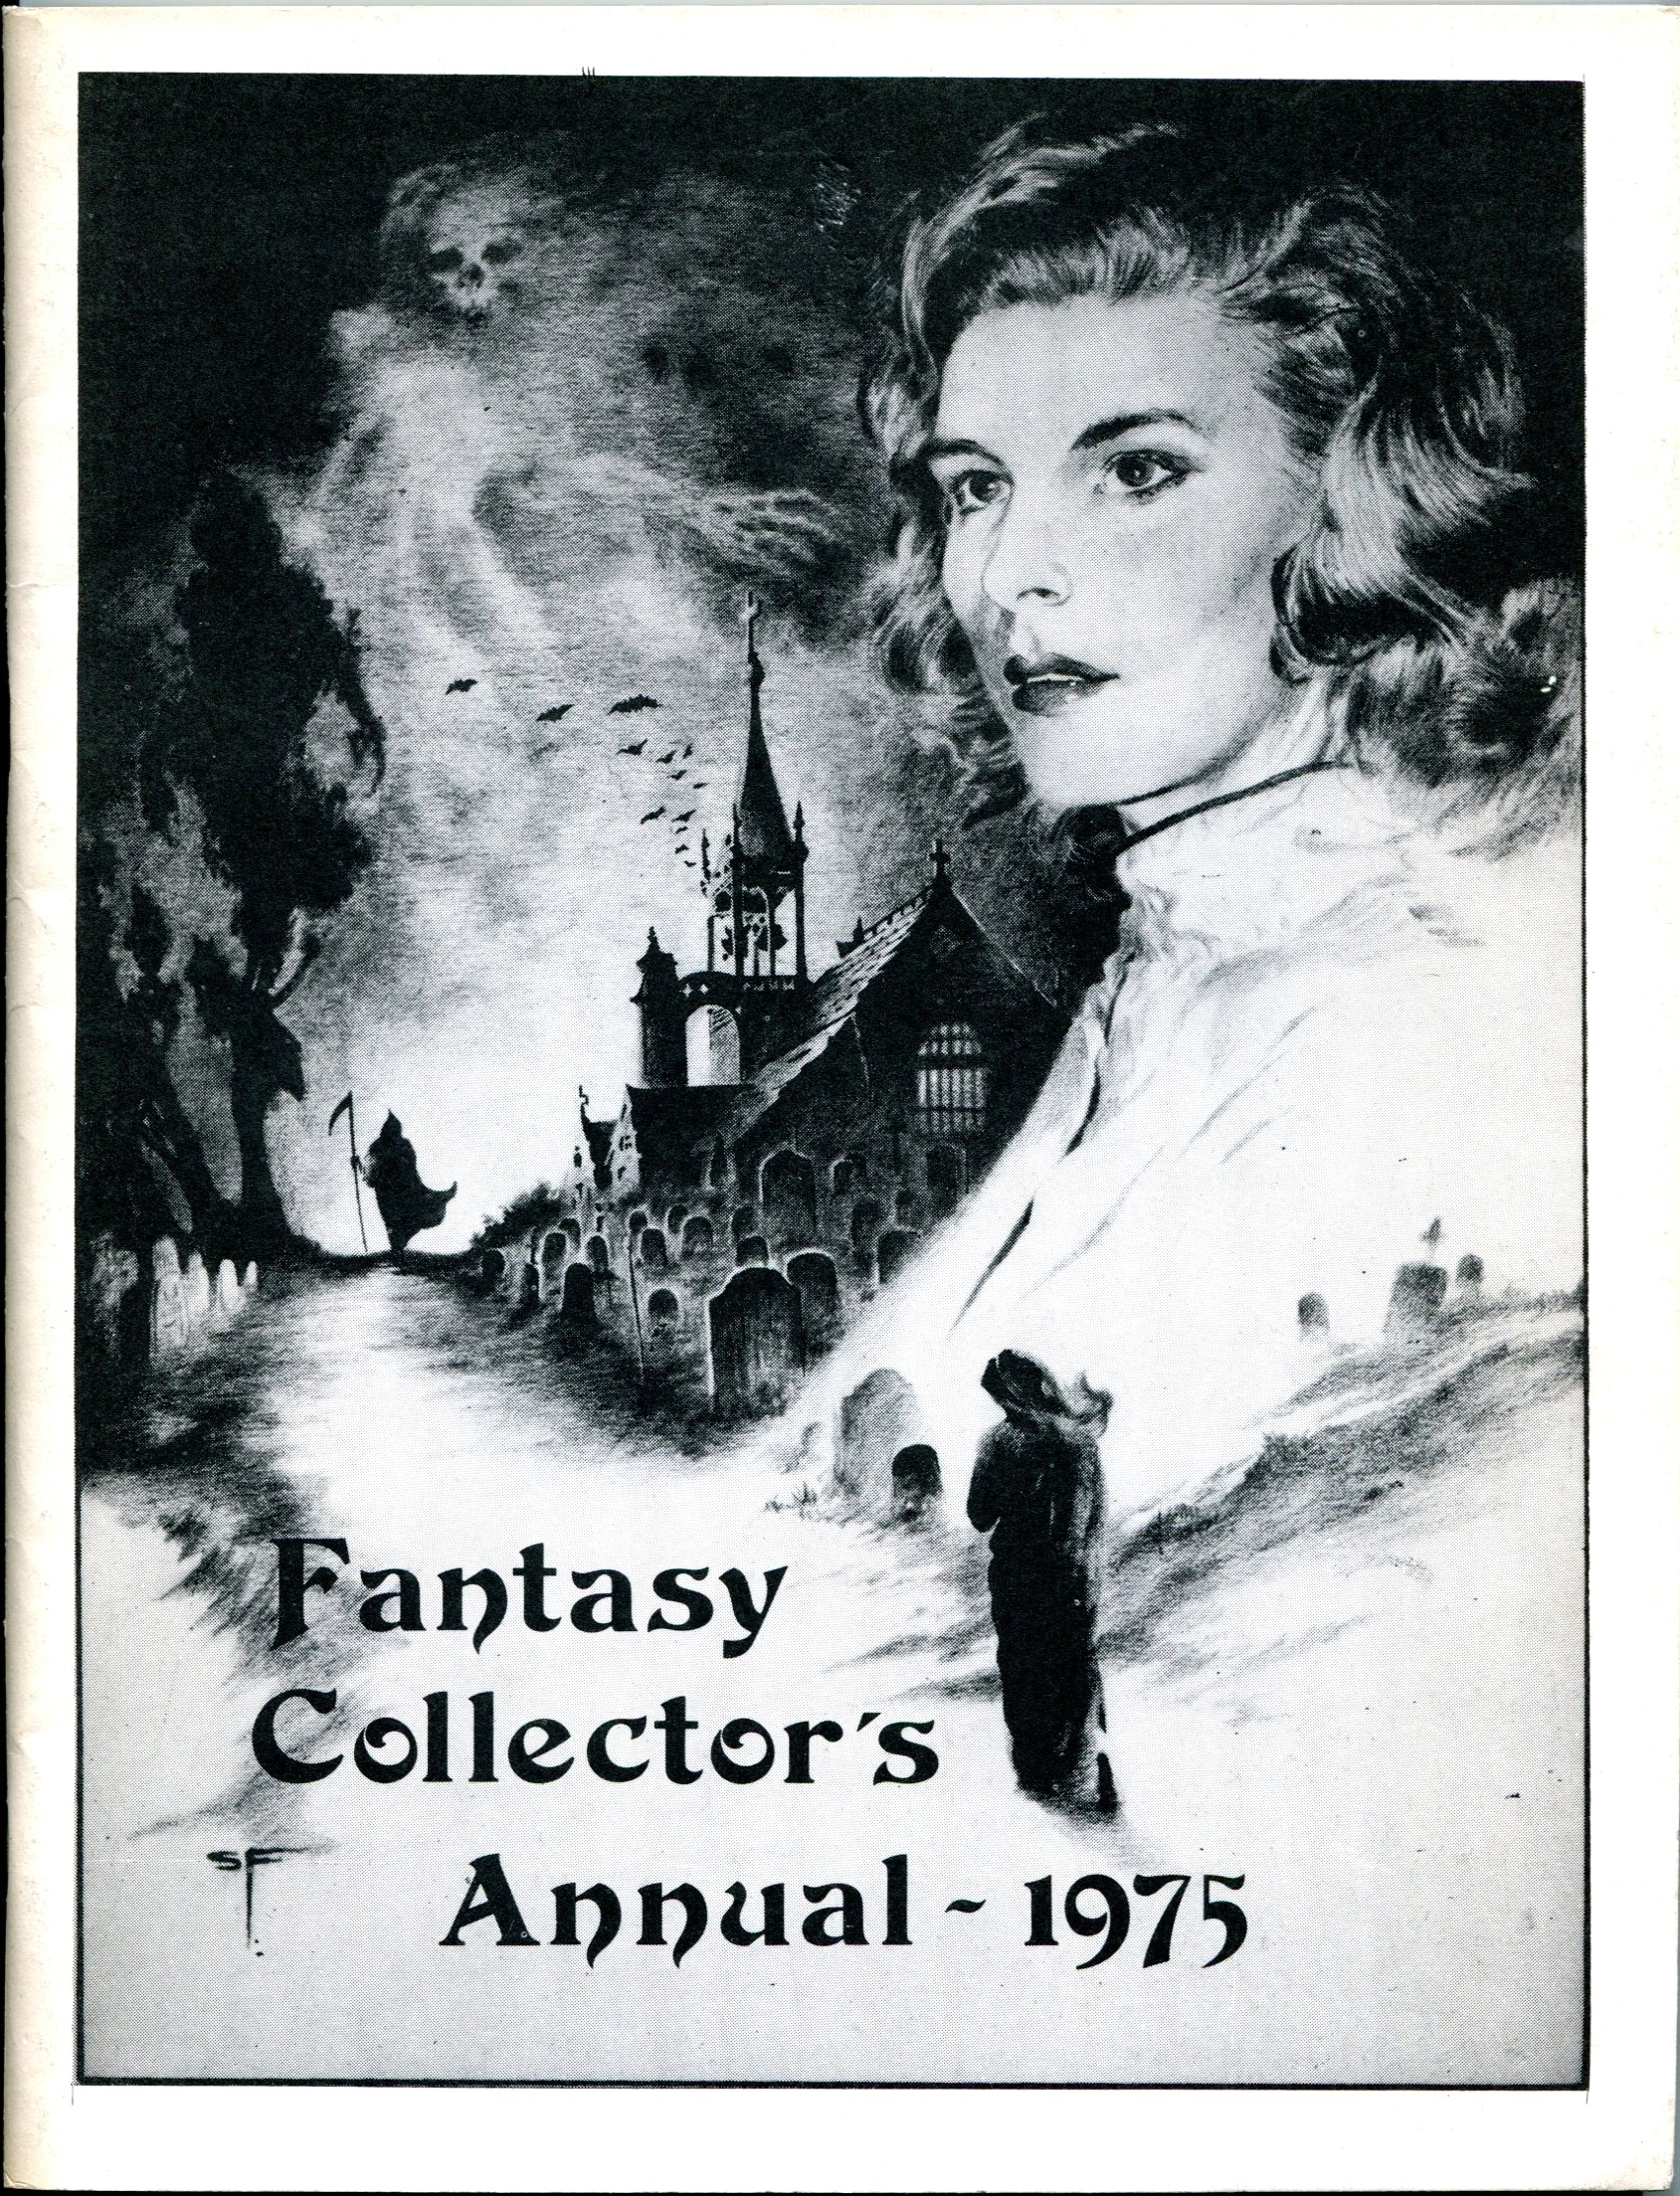 Fantasy Collector's Annual